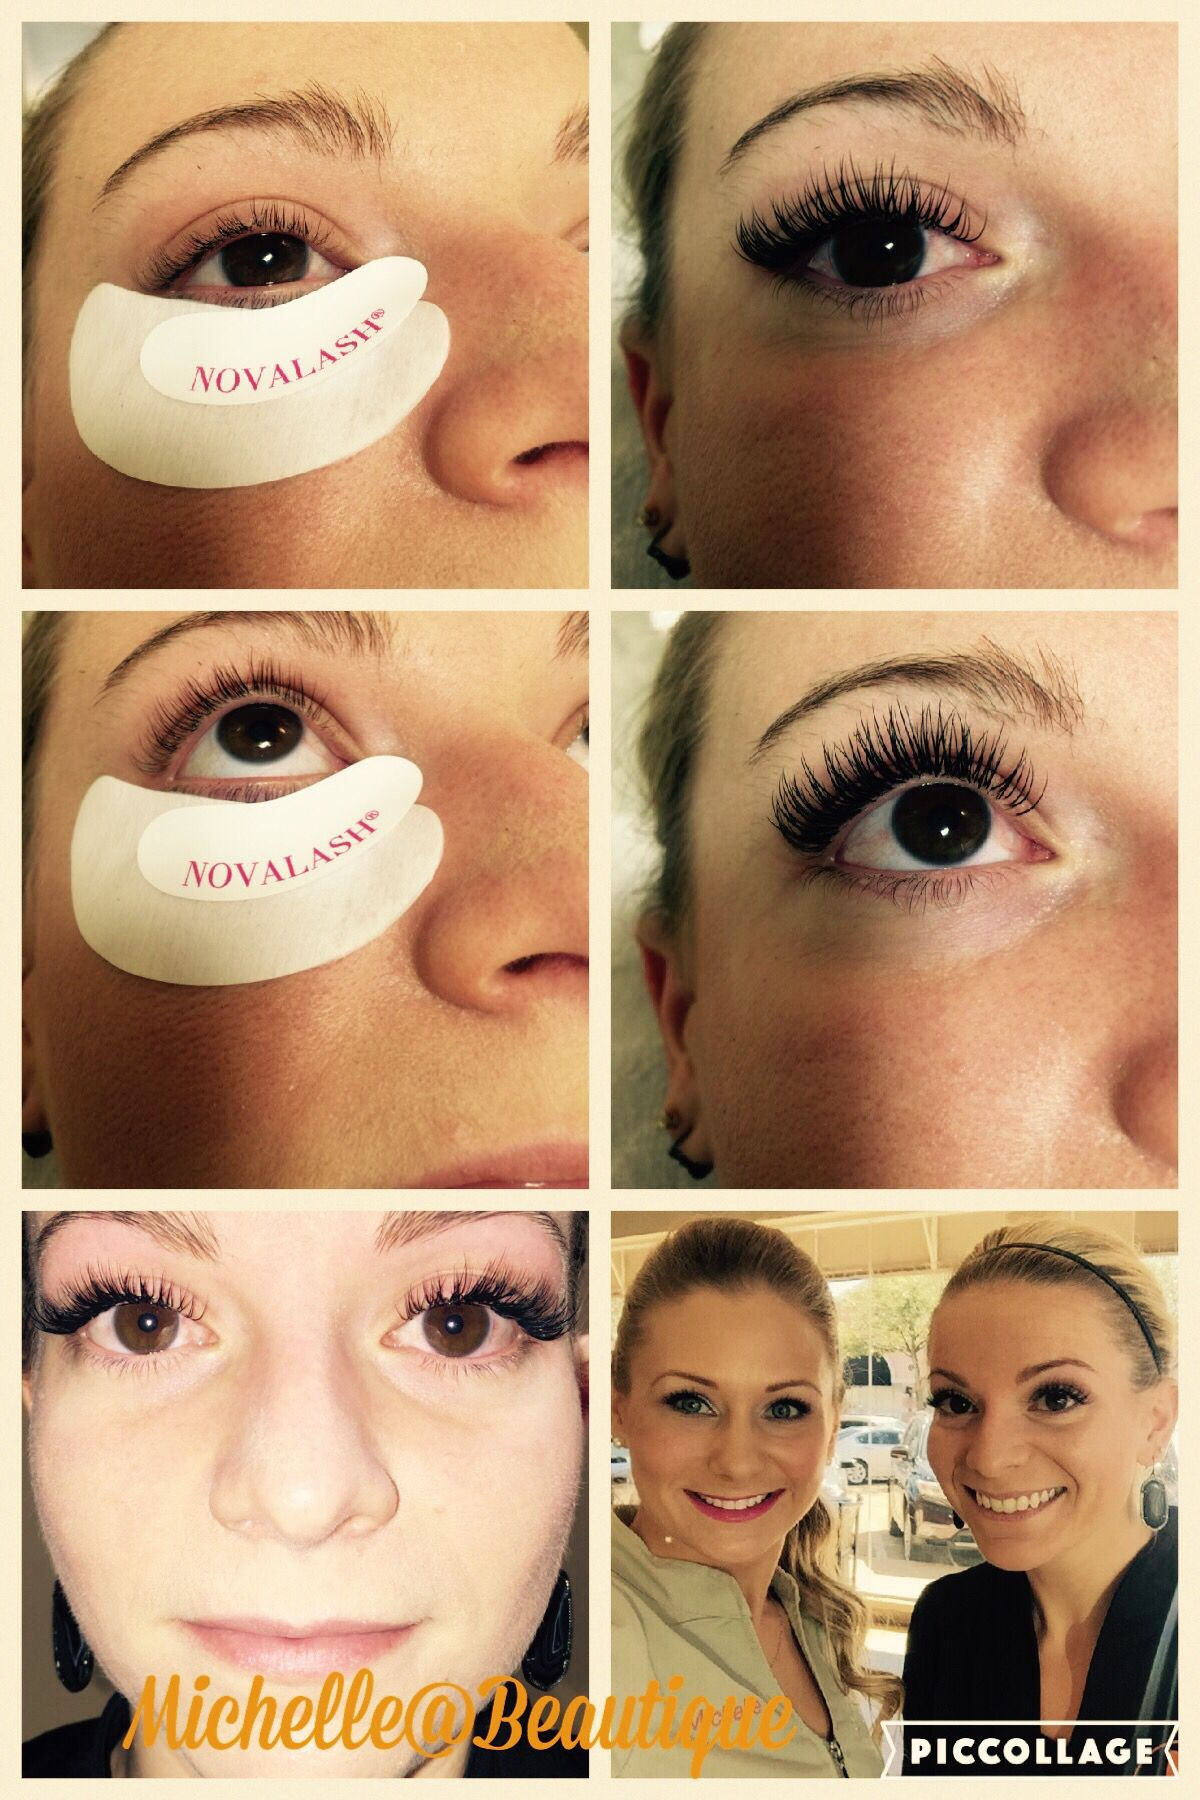 Nova Lash Extensions I Used Novaminx Mix D Curl 8mm10mm And 12mm